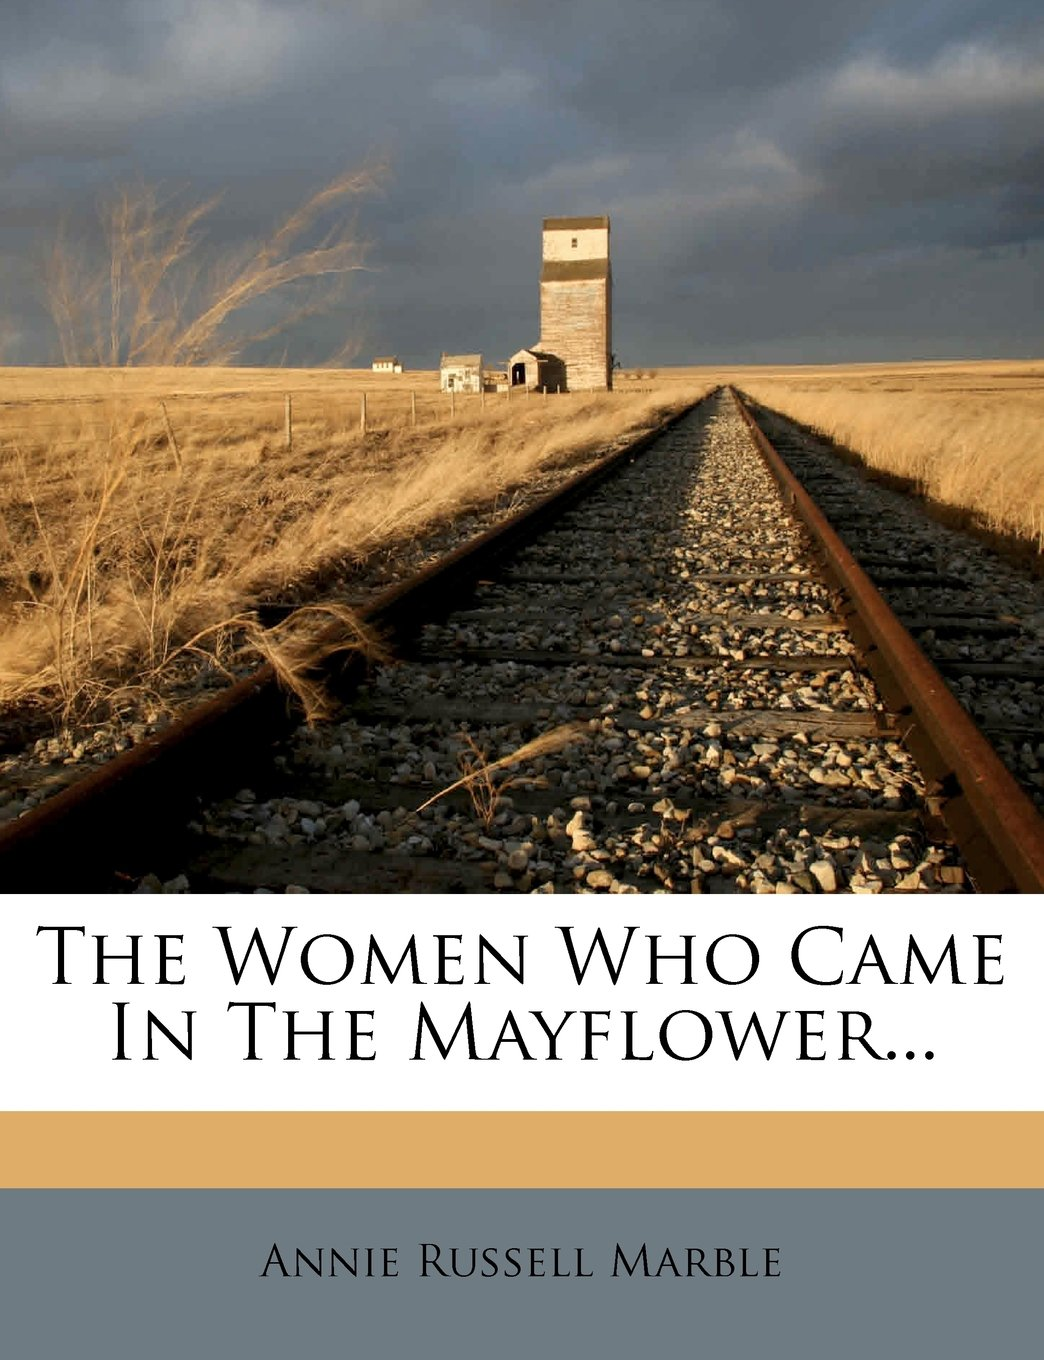 The Women Who Came In The Mayflower...: Annie Russell Marble:  9781276936934: Amazon.com: Books